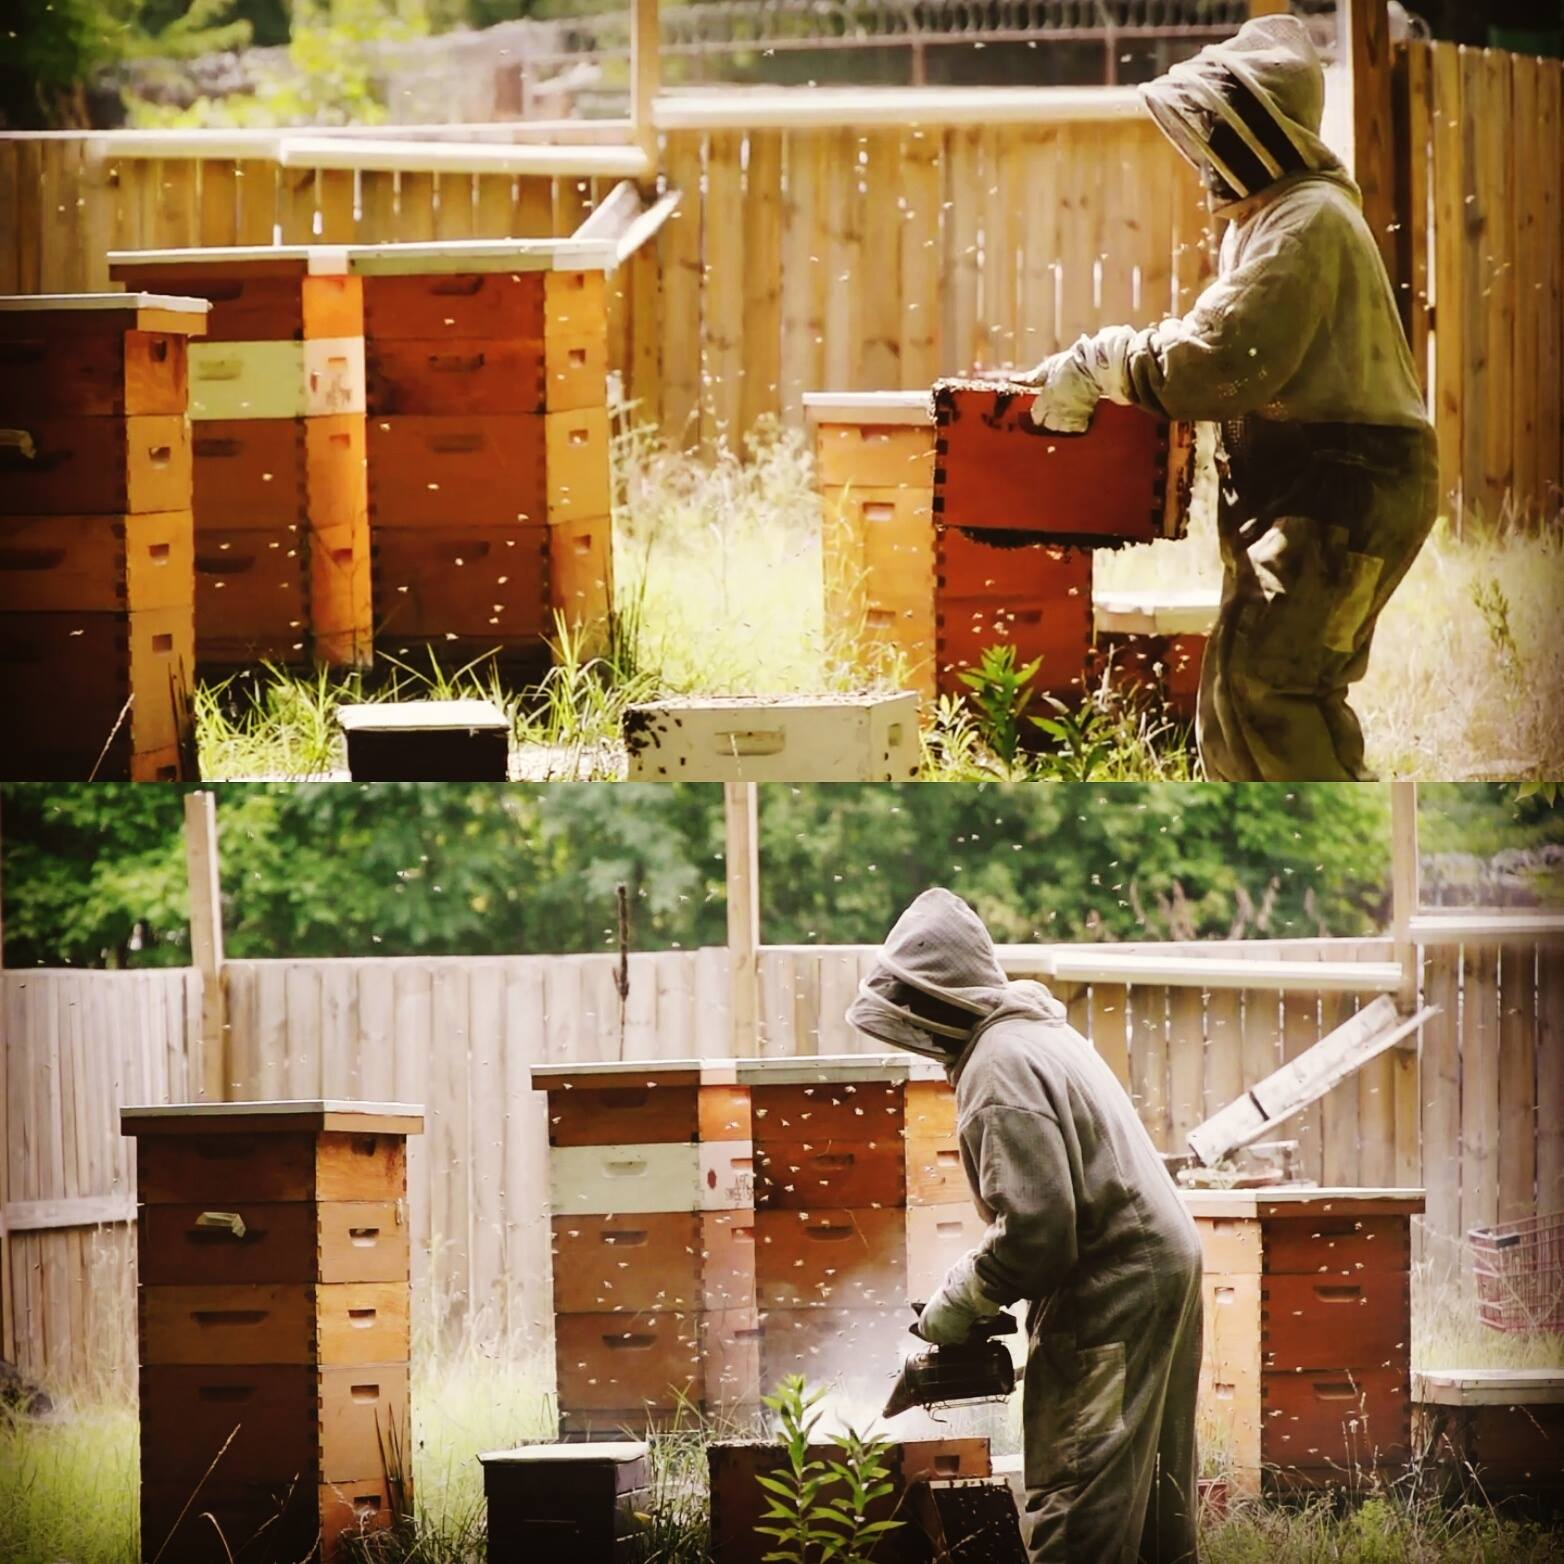 Brent Wesley, owner of Akron Honey Company, caring for his bees.